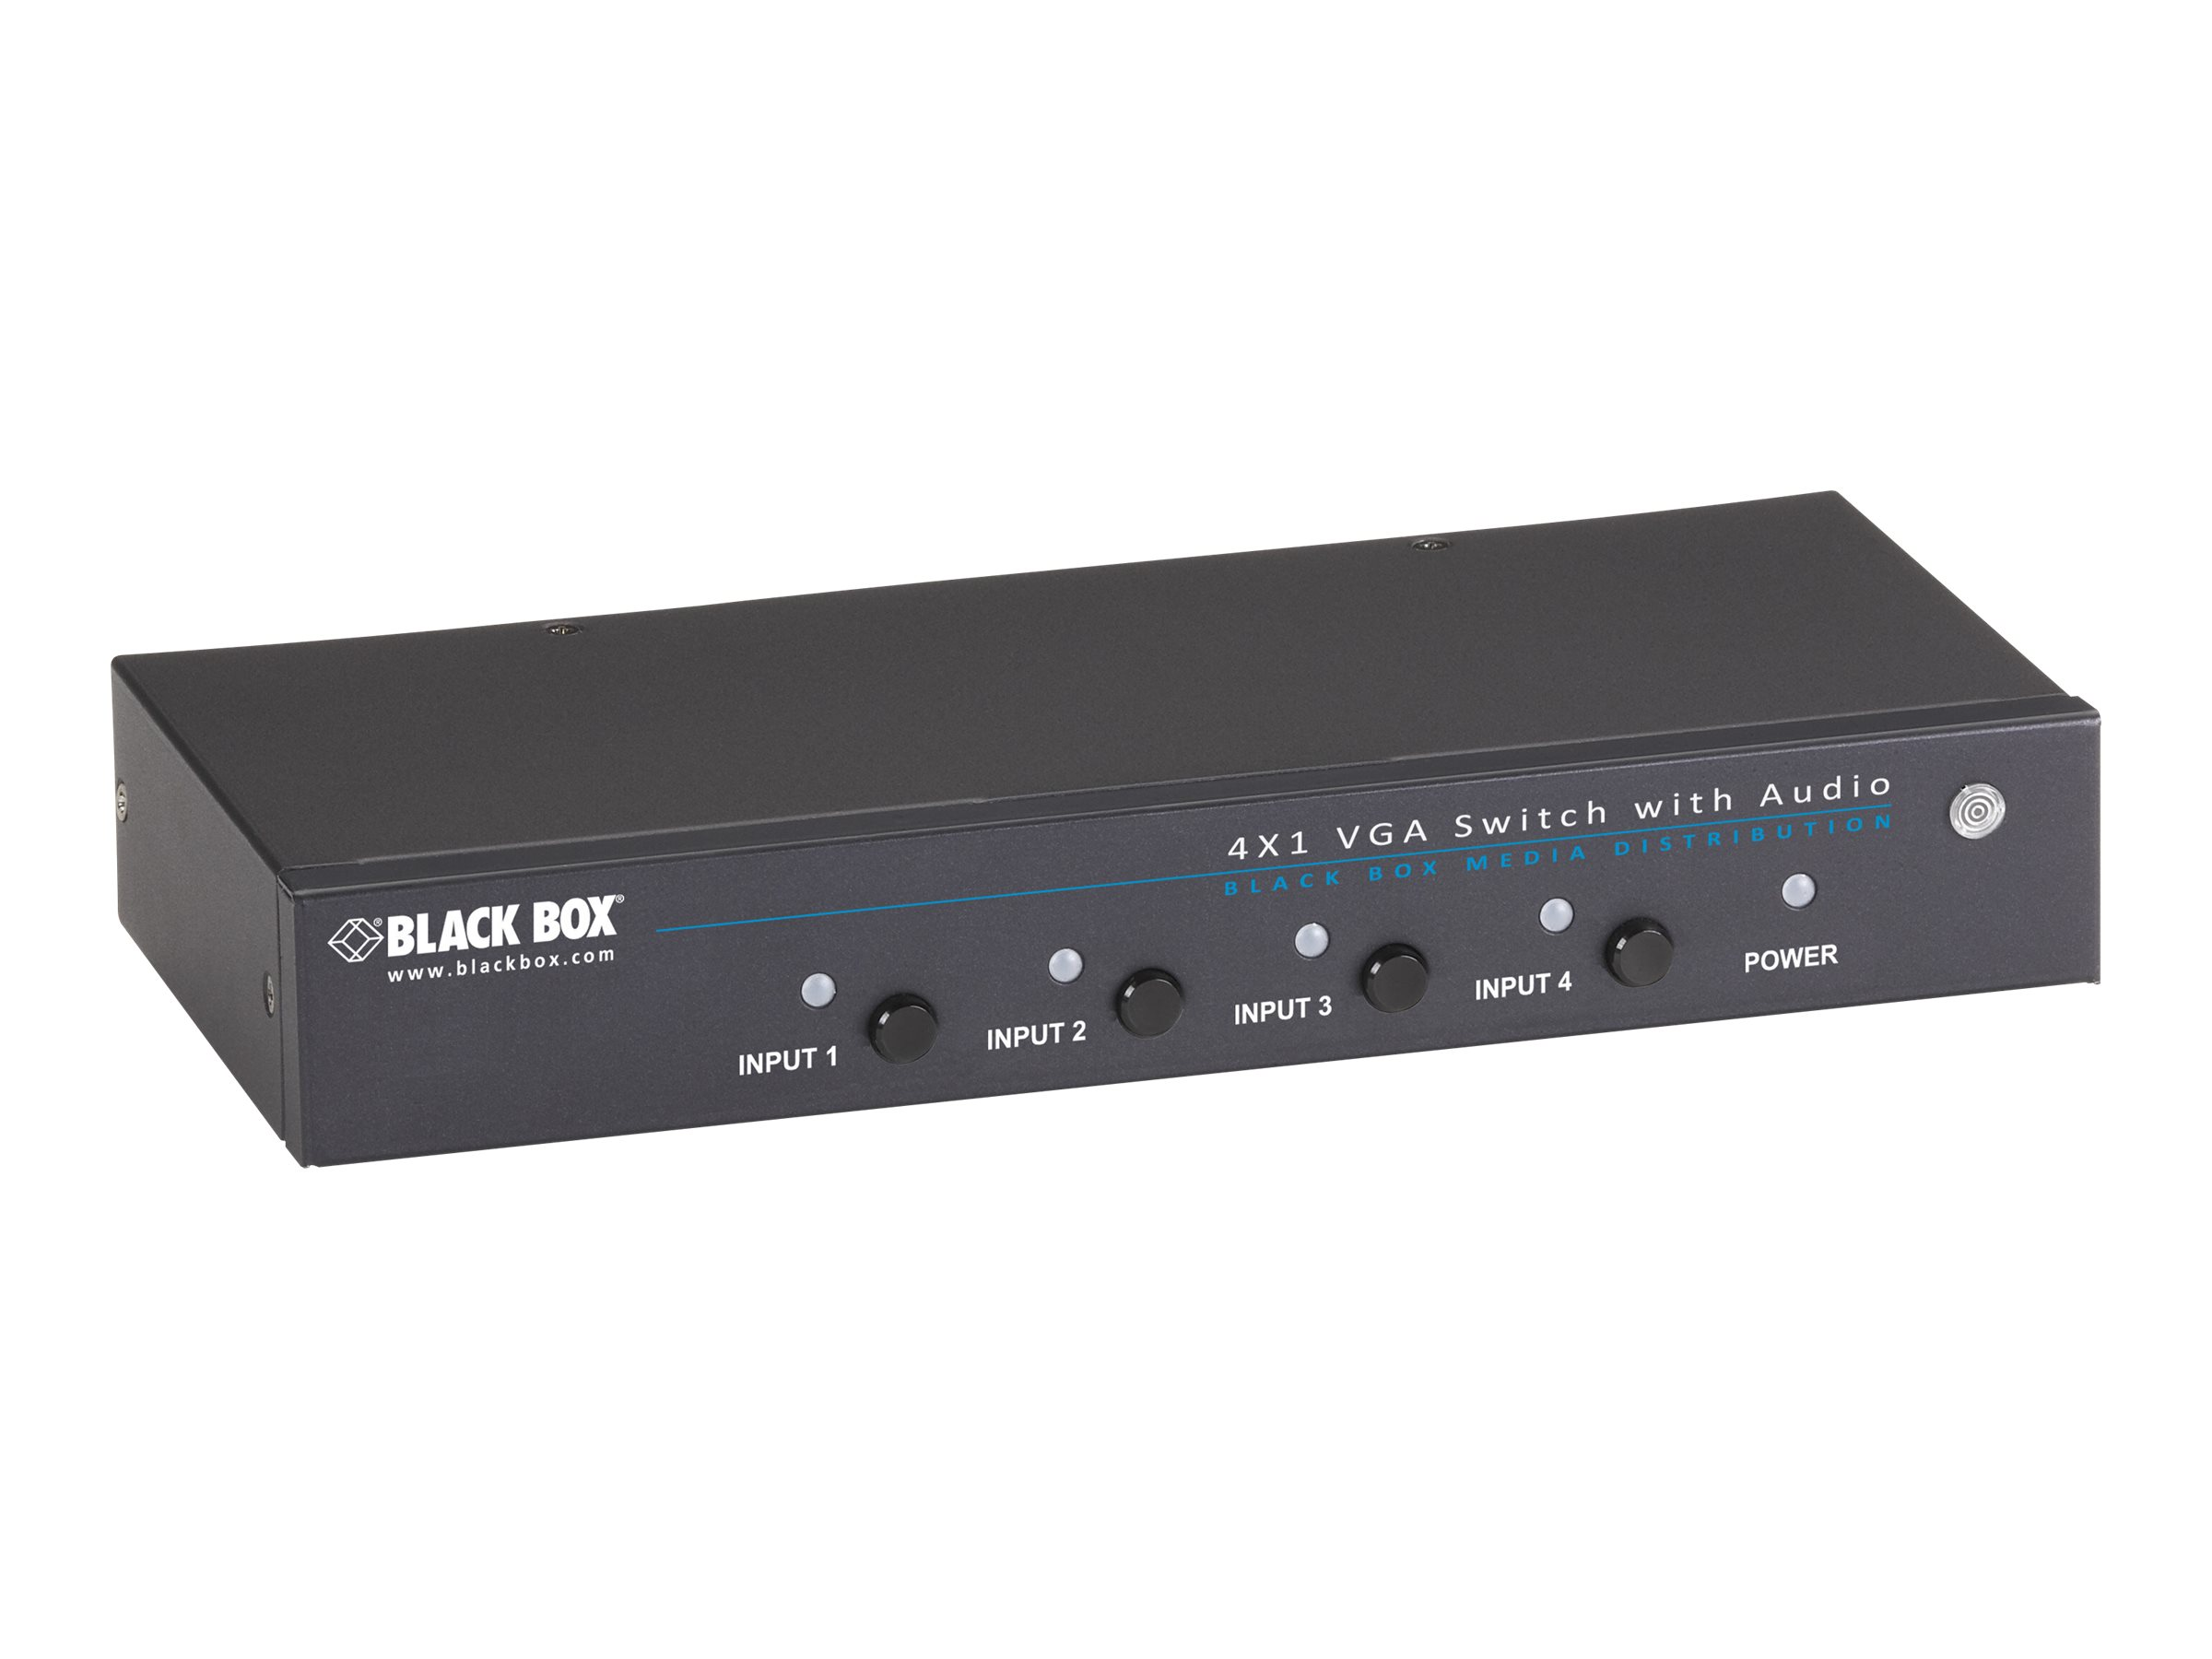 Black Box 4 x 1 VGA Switch with Serial and Audio - monitor/audio switch - 4 ports - rack-mountable